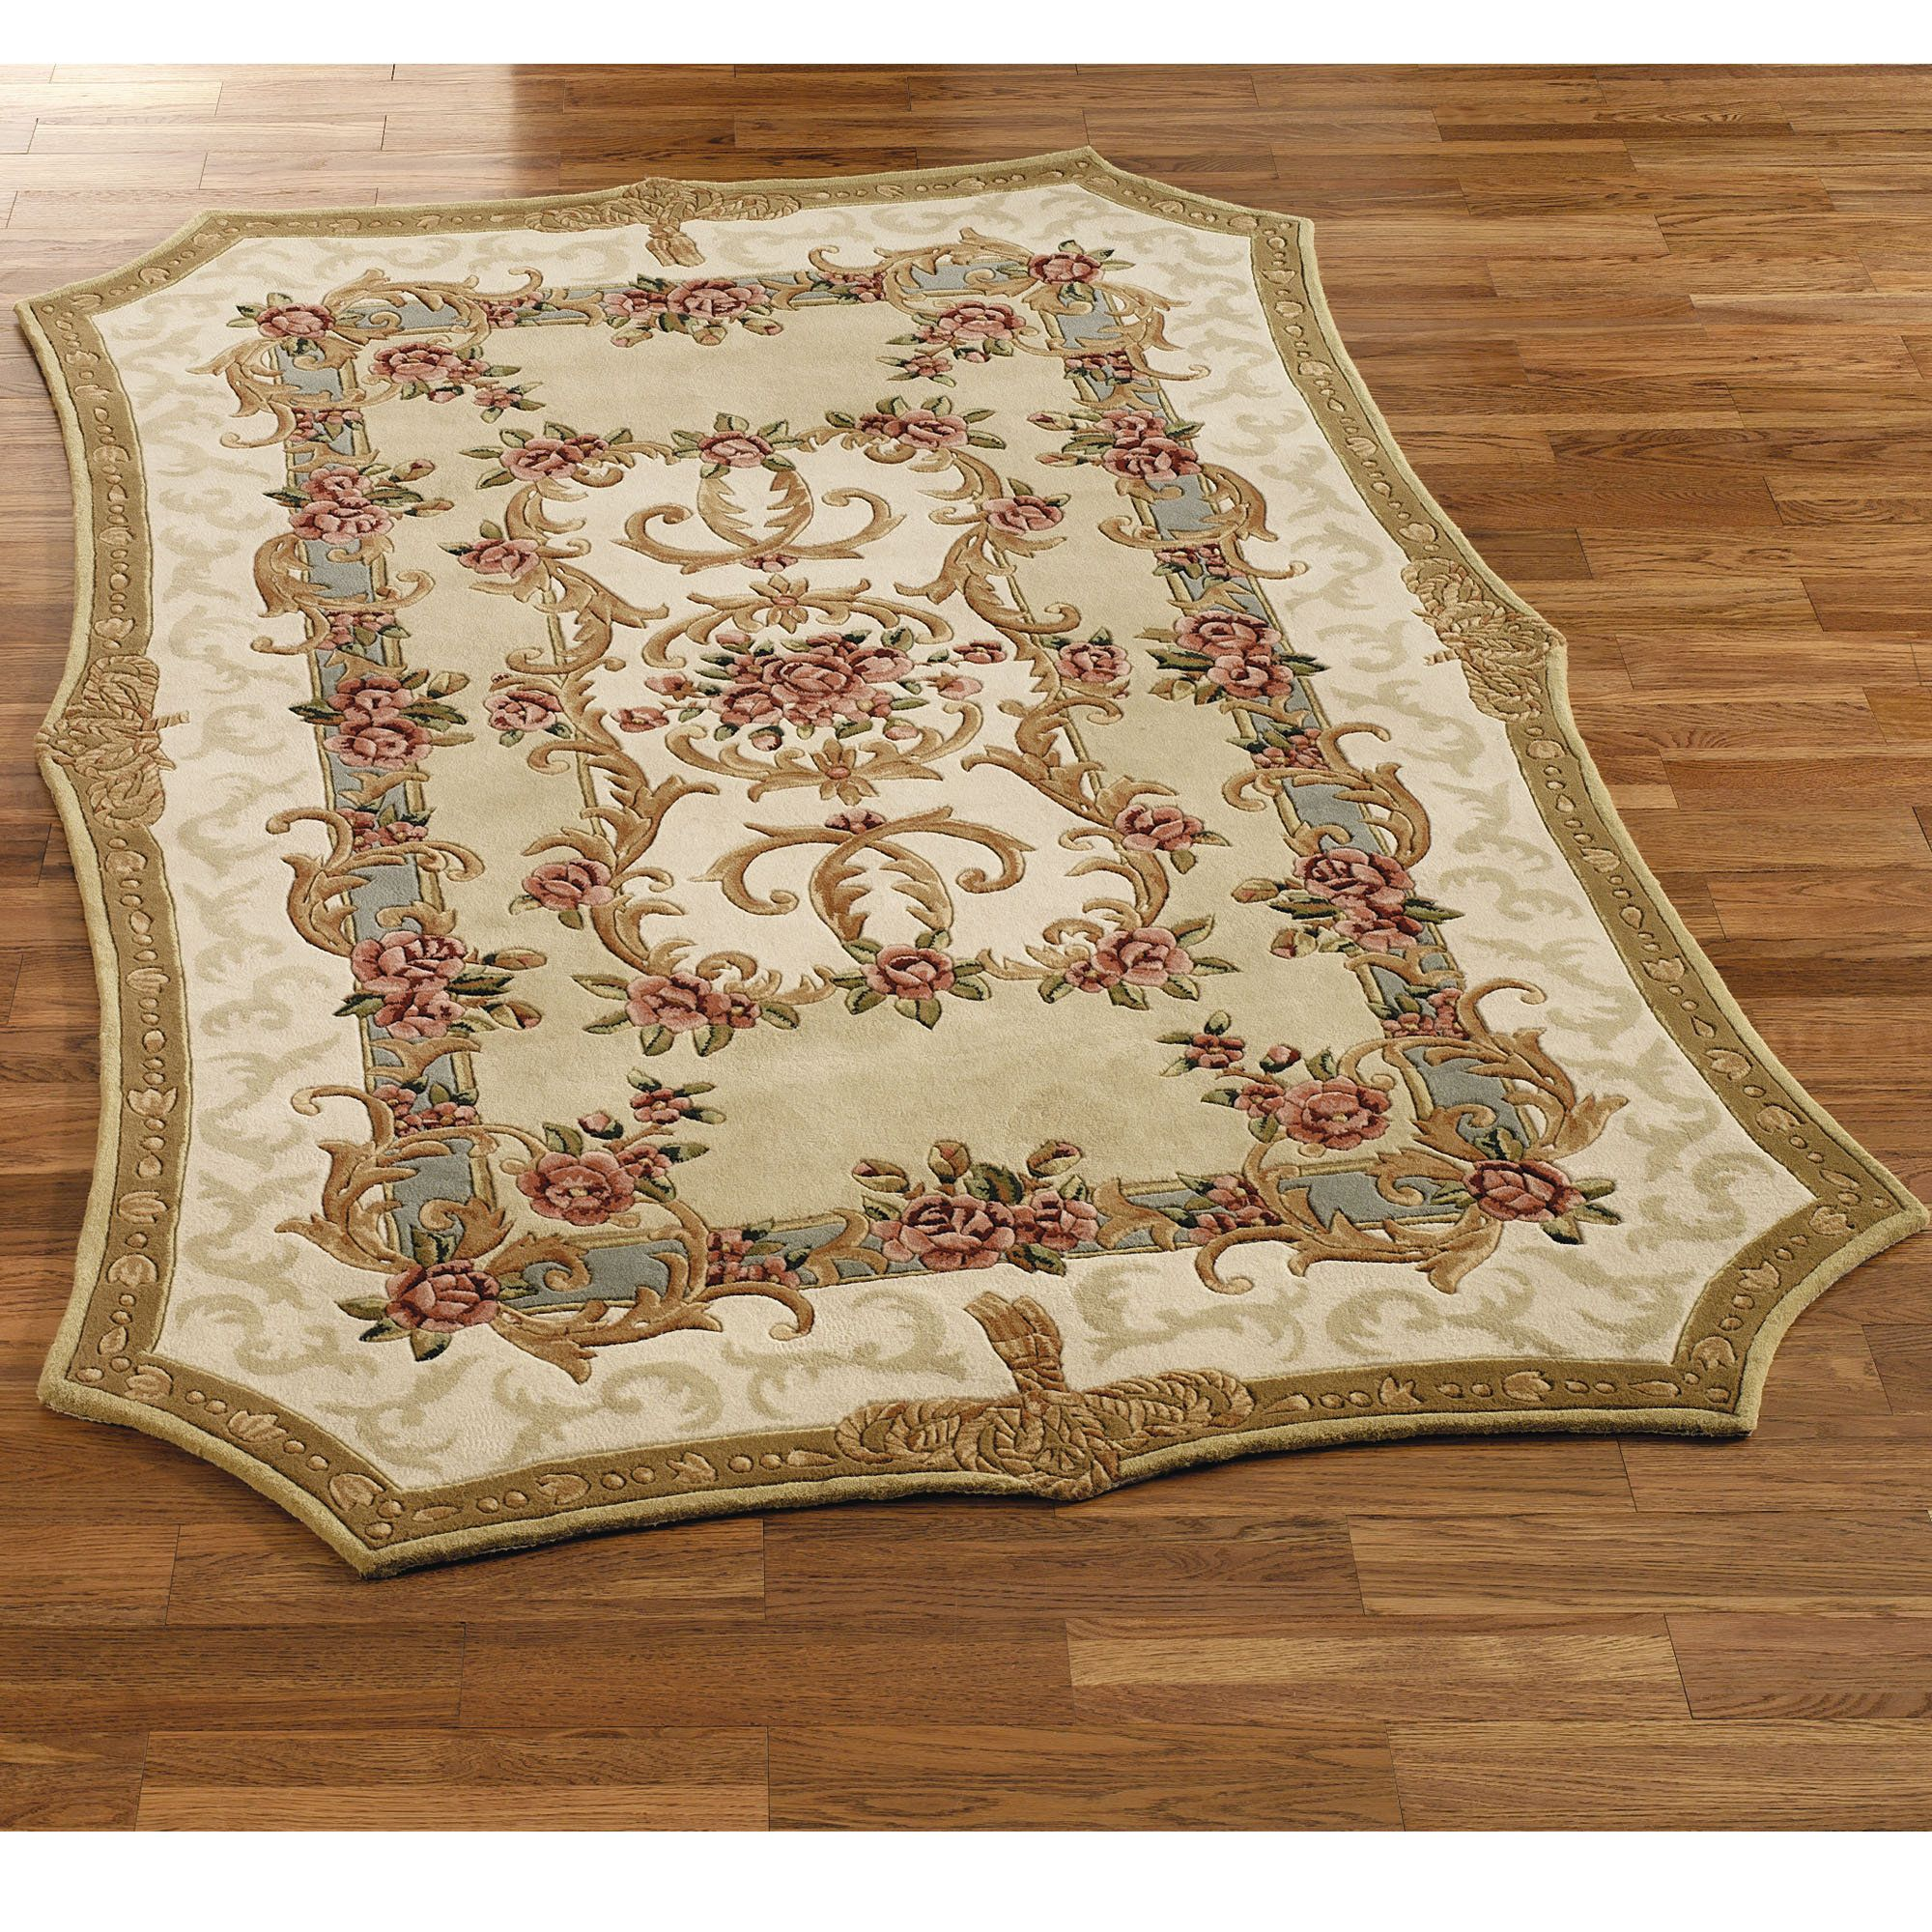 Area Rugs. Perfect Area Rugs Online Cheap Area Rugs Area Rug Sale Small Area Rugs With ...